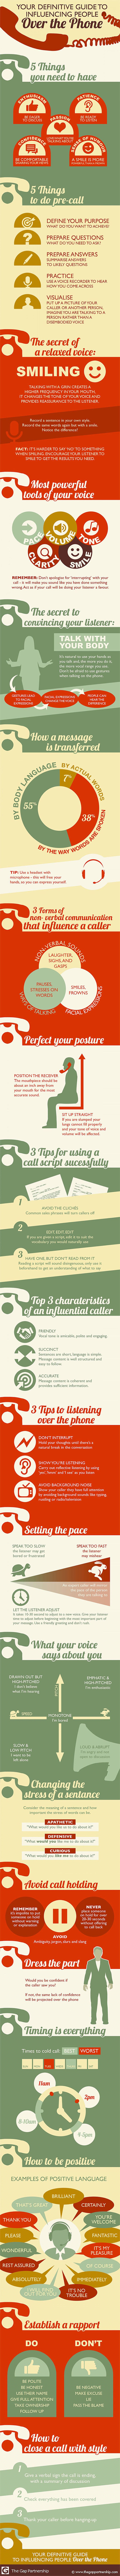 Everything You Need to Know About Selling Over the Phone - #Infographic #sales